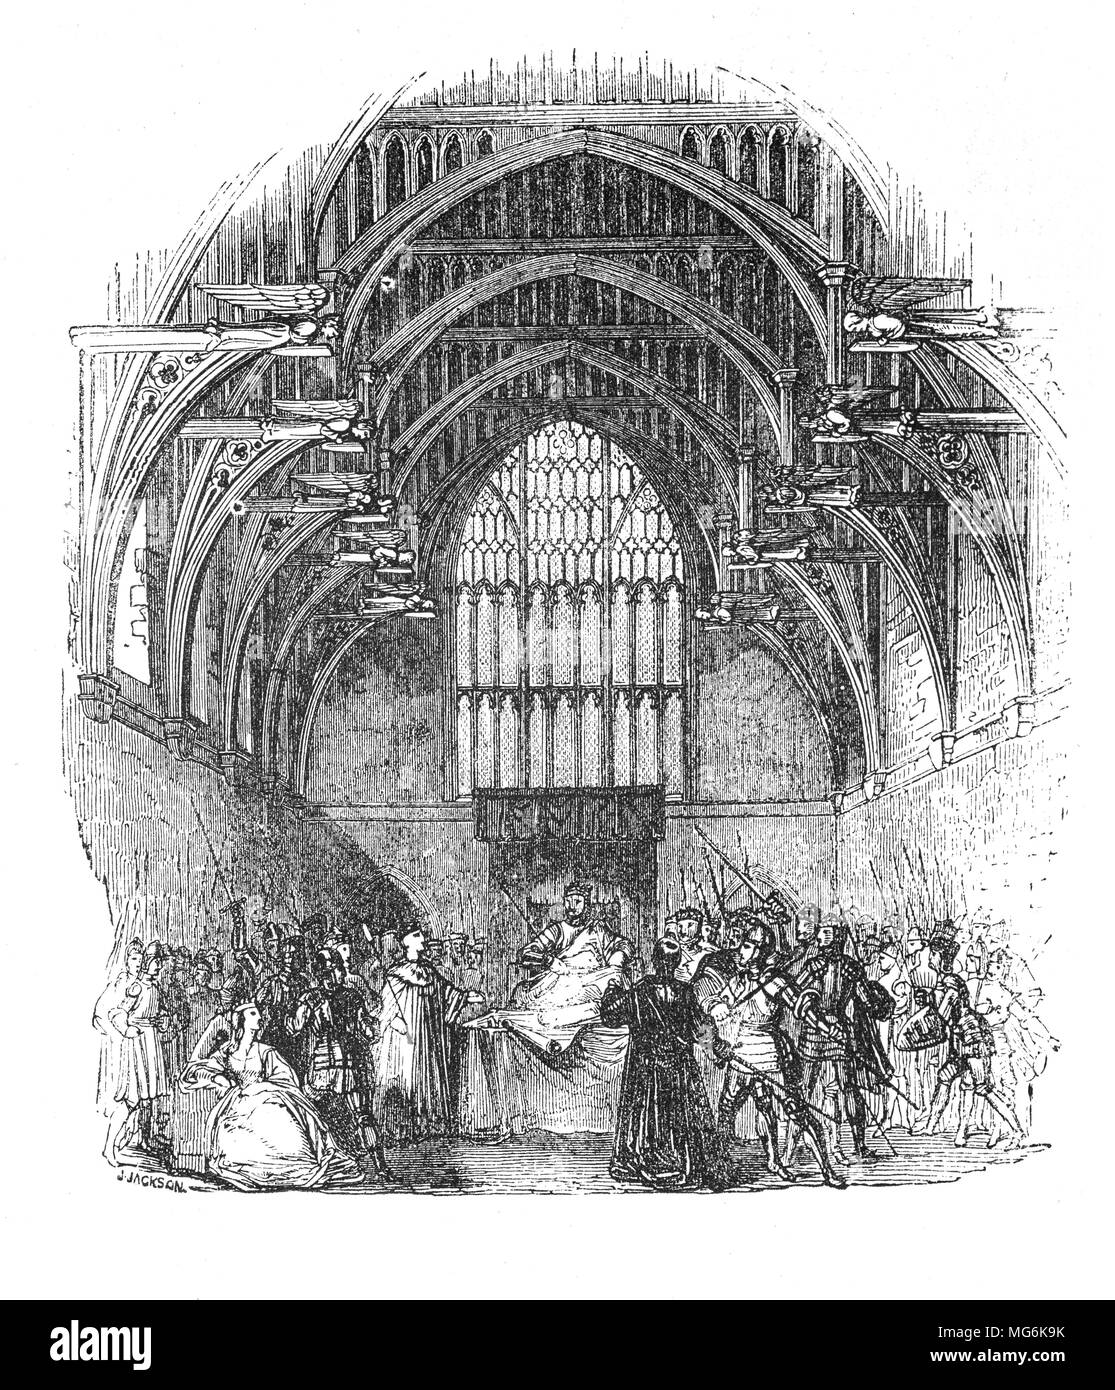 Signing of a treaty between King Henry VI and Richard of York, 3rd Duke of York, also known as Richard Plantagenet in Westminster Hall. Richard served in various offices of state in Ireland, France, and England - a country he ultimately governed as Lord Protector during the madness of King Henry VI.  His conflicts with Henry's wife, Margaret of Anjou, and other members of Henry's court, not to mention his competing claim on the throne, were a major cause of the Wars of the Roses. Stock Photo